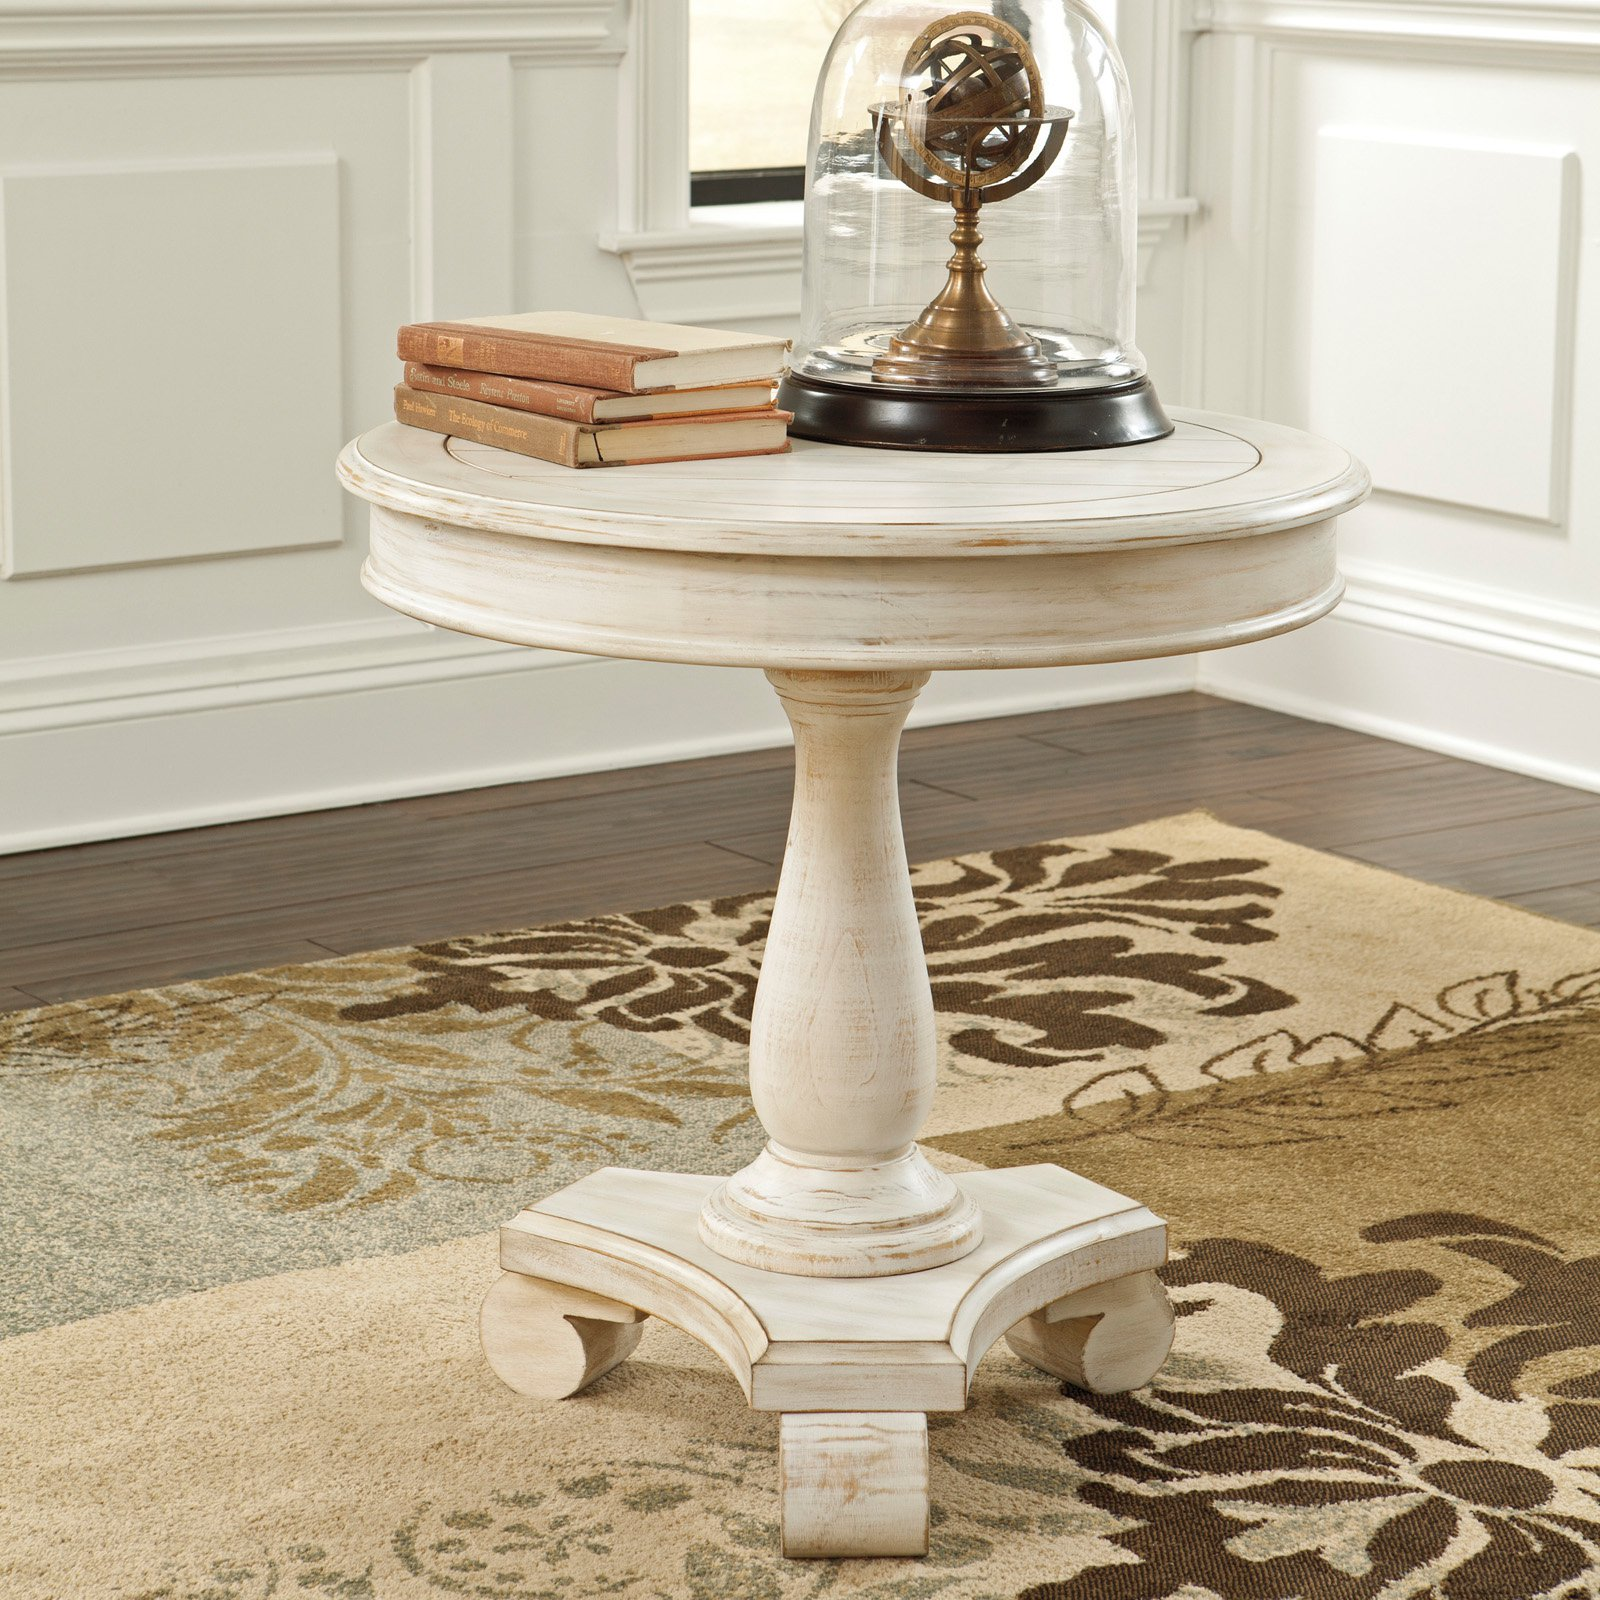 signature design ashley cottage accents white round accent table foyer furniture jcp bedding family room end tables homesense modern lamps monarch specialities coffee knurl